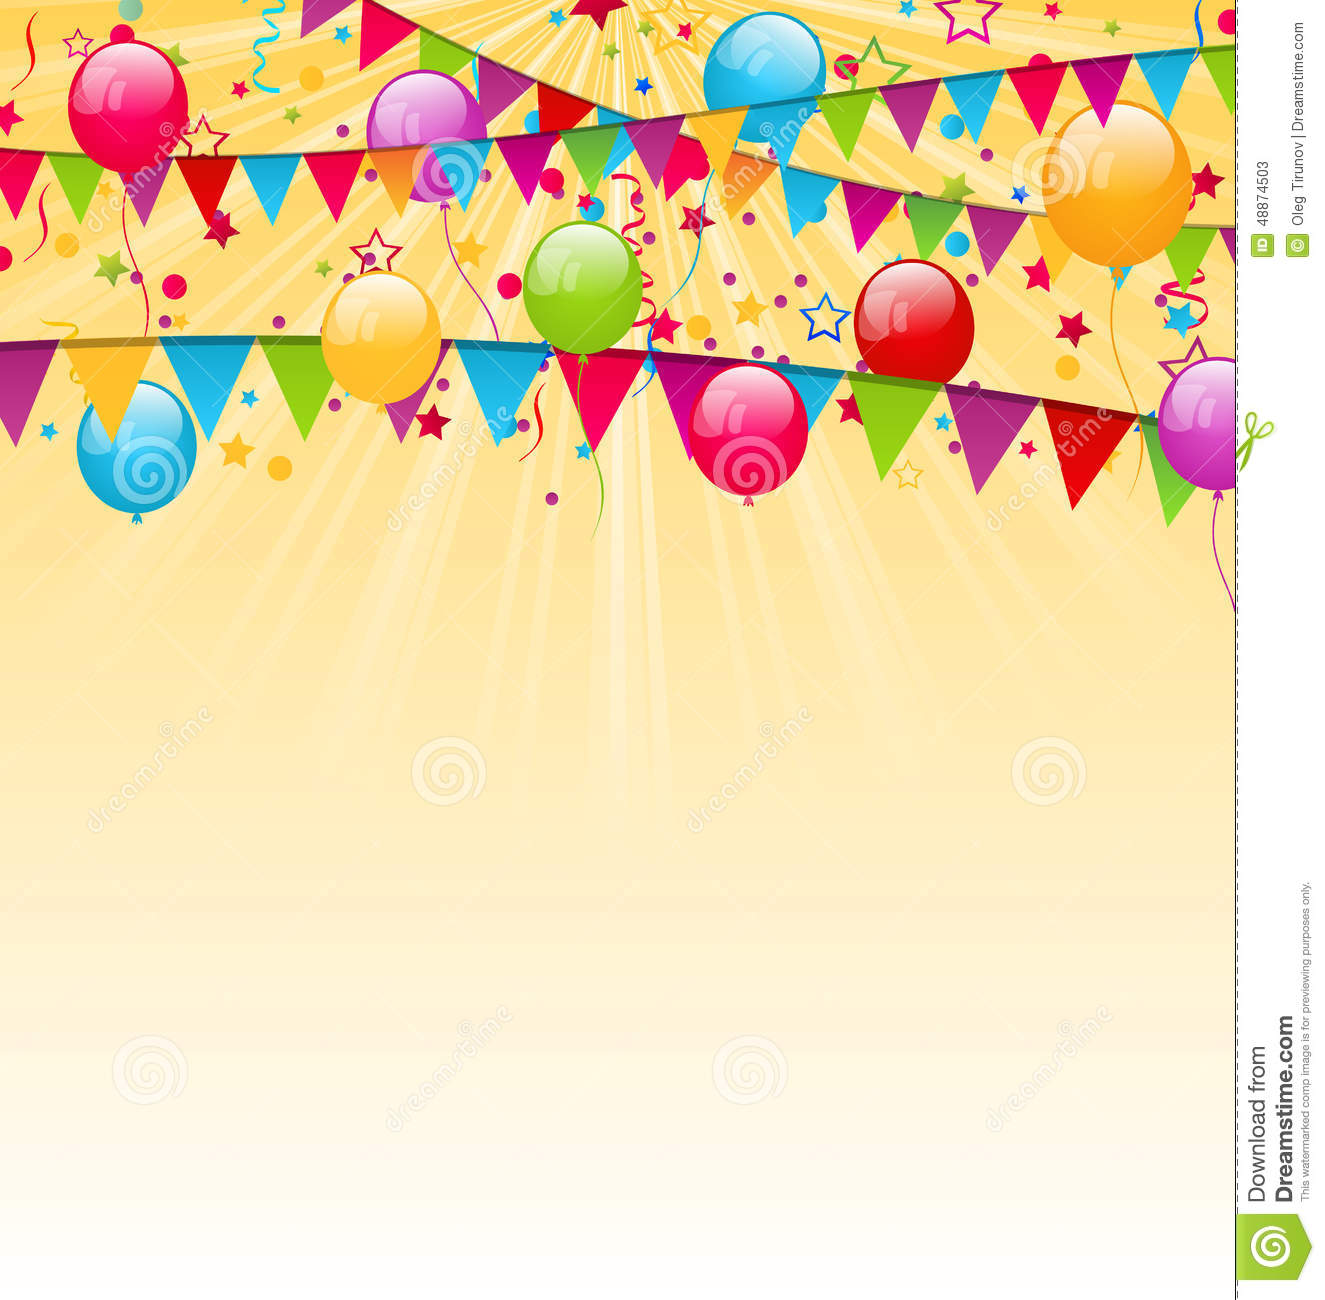 Holiday Background With Colorful Balloons Hanging Flags